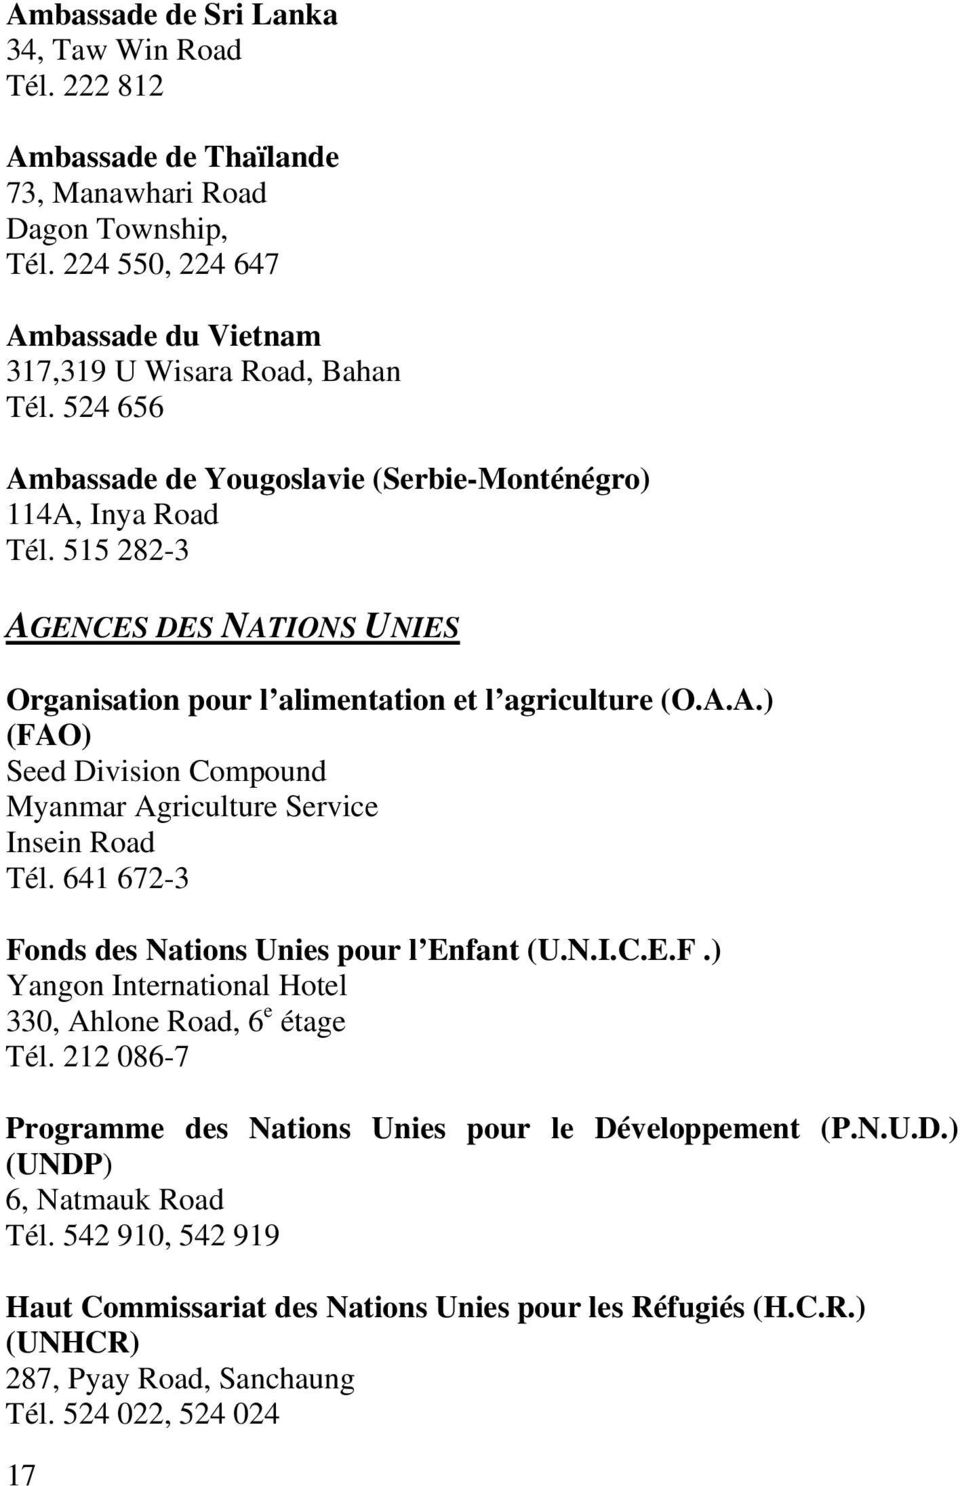 641 672-3 Fonds des Nations Unies pour l Enfant (U.N.I.C.E.F.) Yangon International Hotel 330, Ahlone Road, 6 e étage Tél. 212 086-7 Programme des Nations Unies pour le Dé